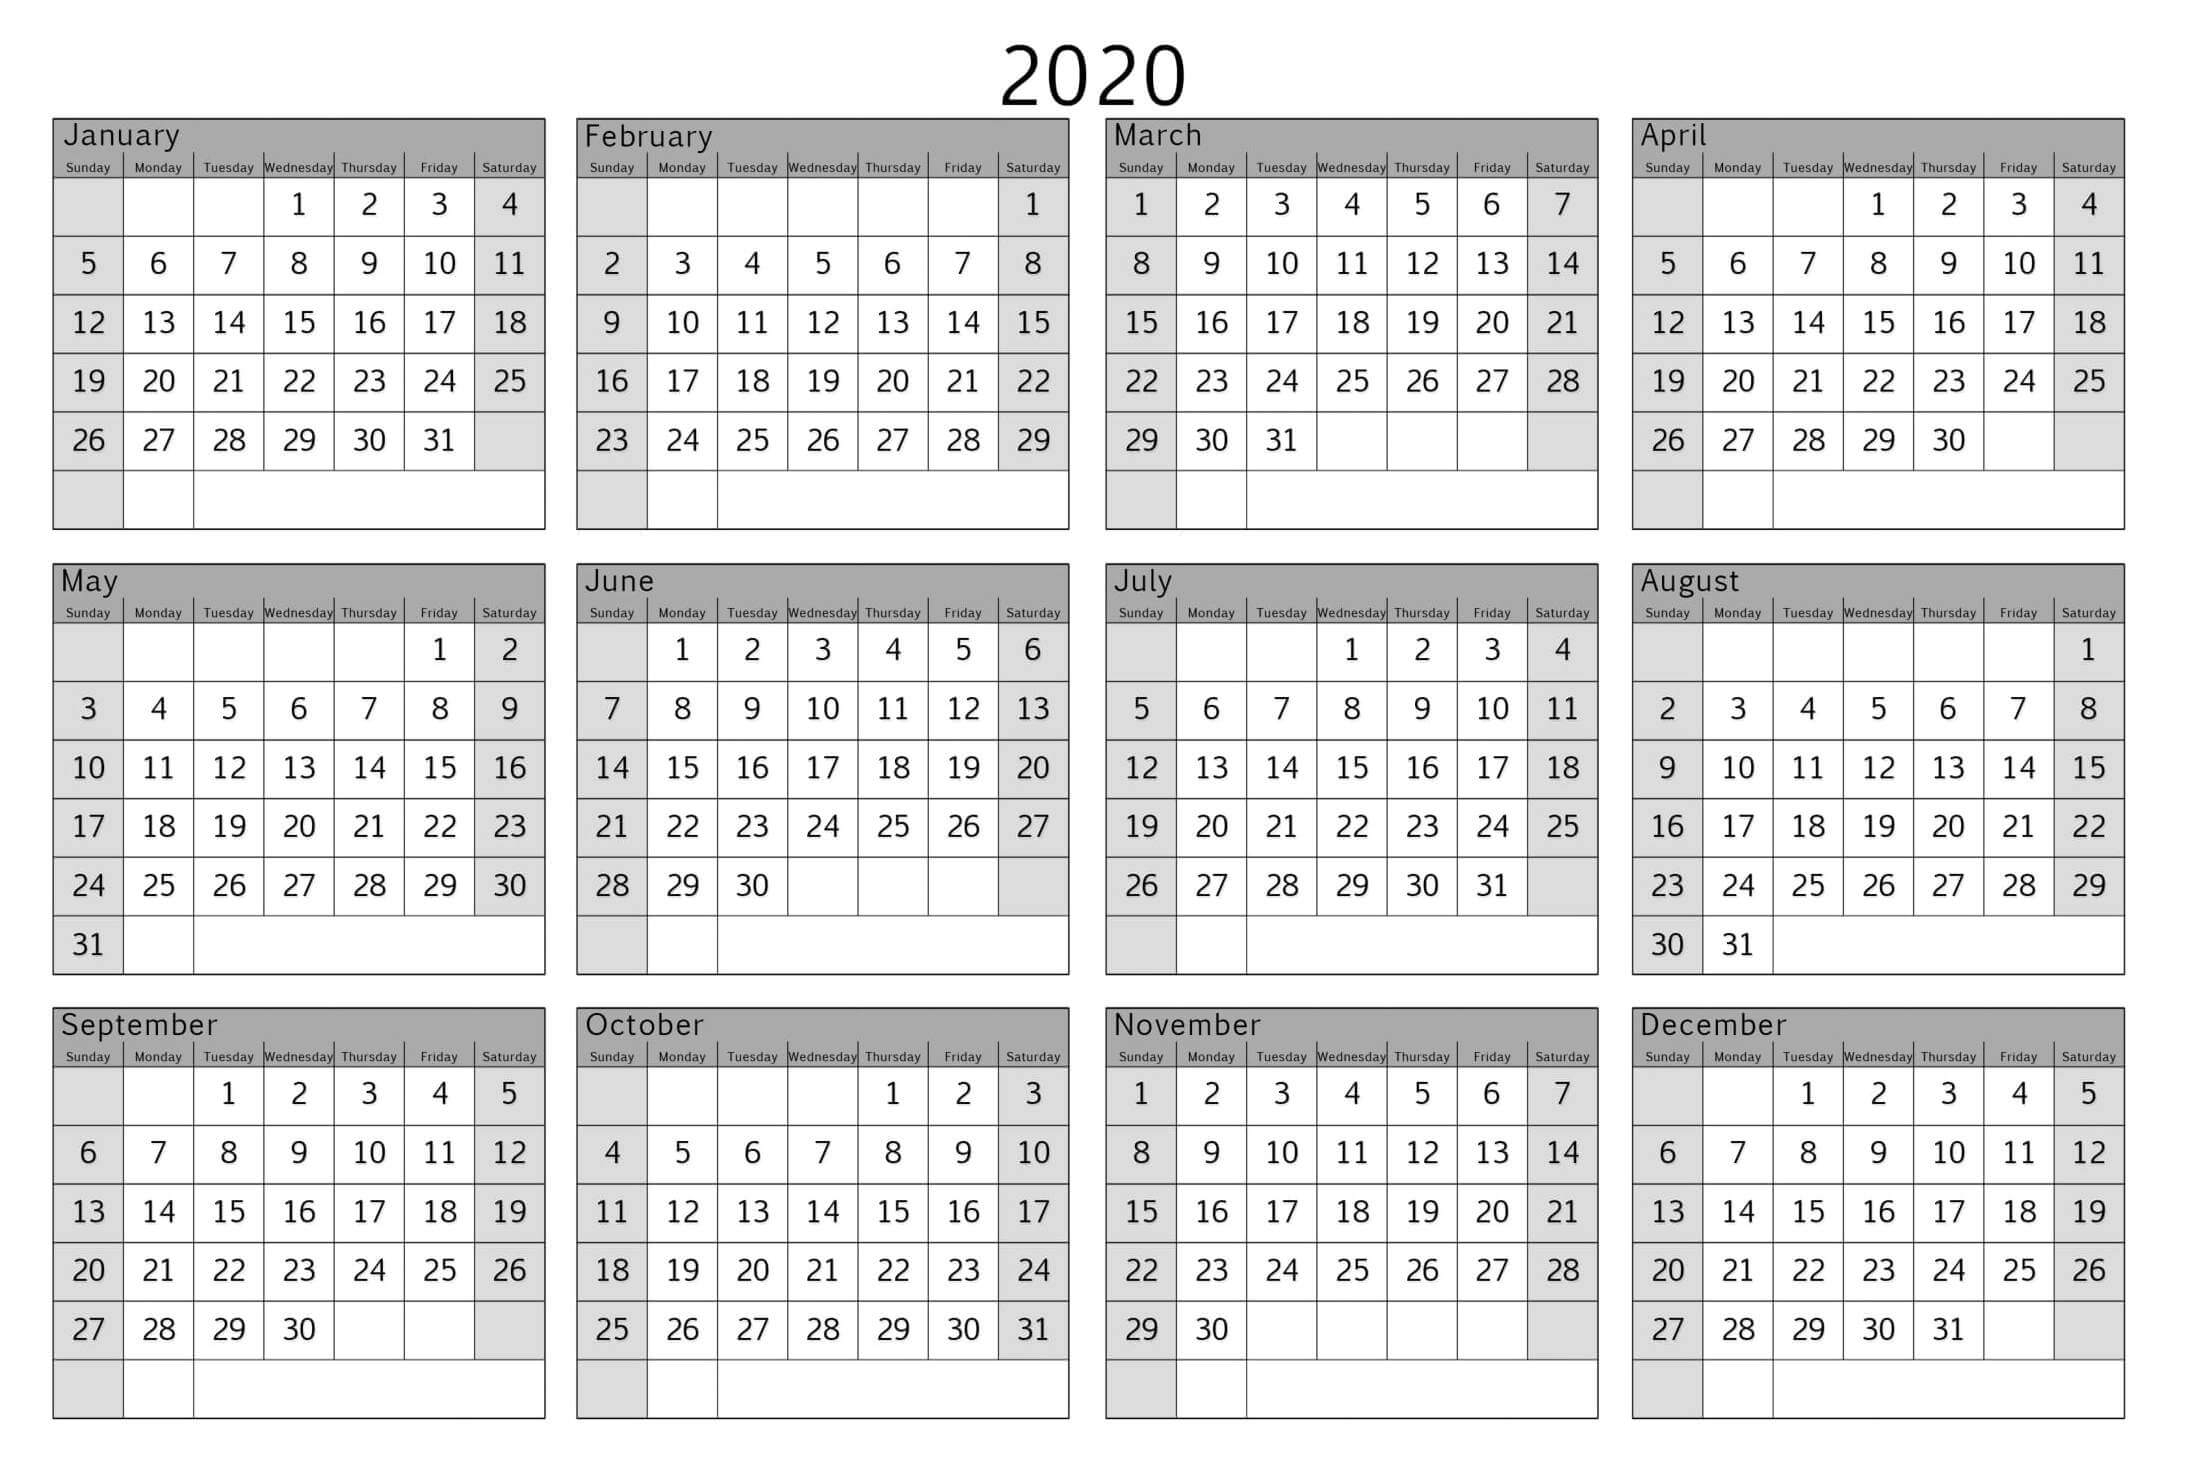 Colorful Yearly Calendar Template With Notes 2020 Word - Set pertaining to 2020 Year Calendar With Space To Write